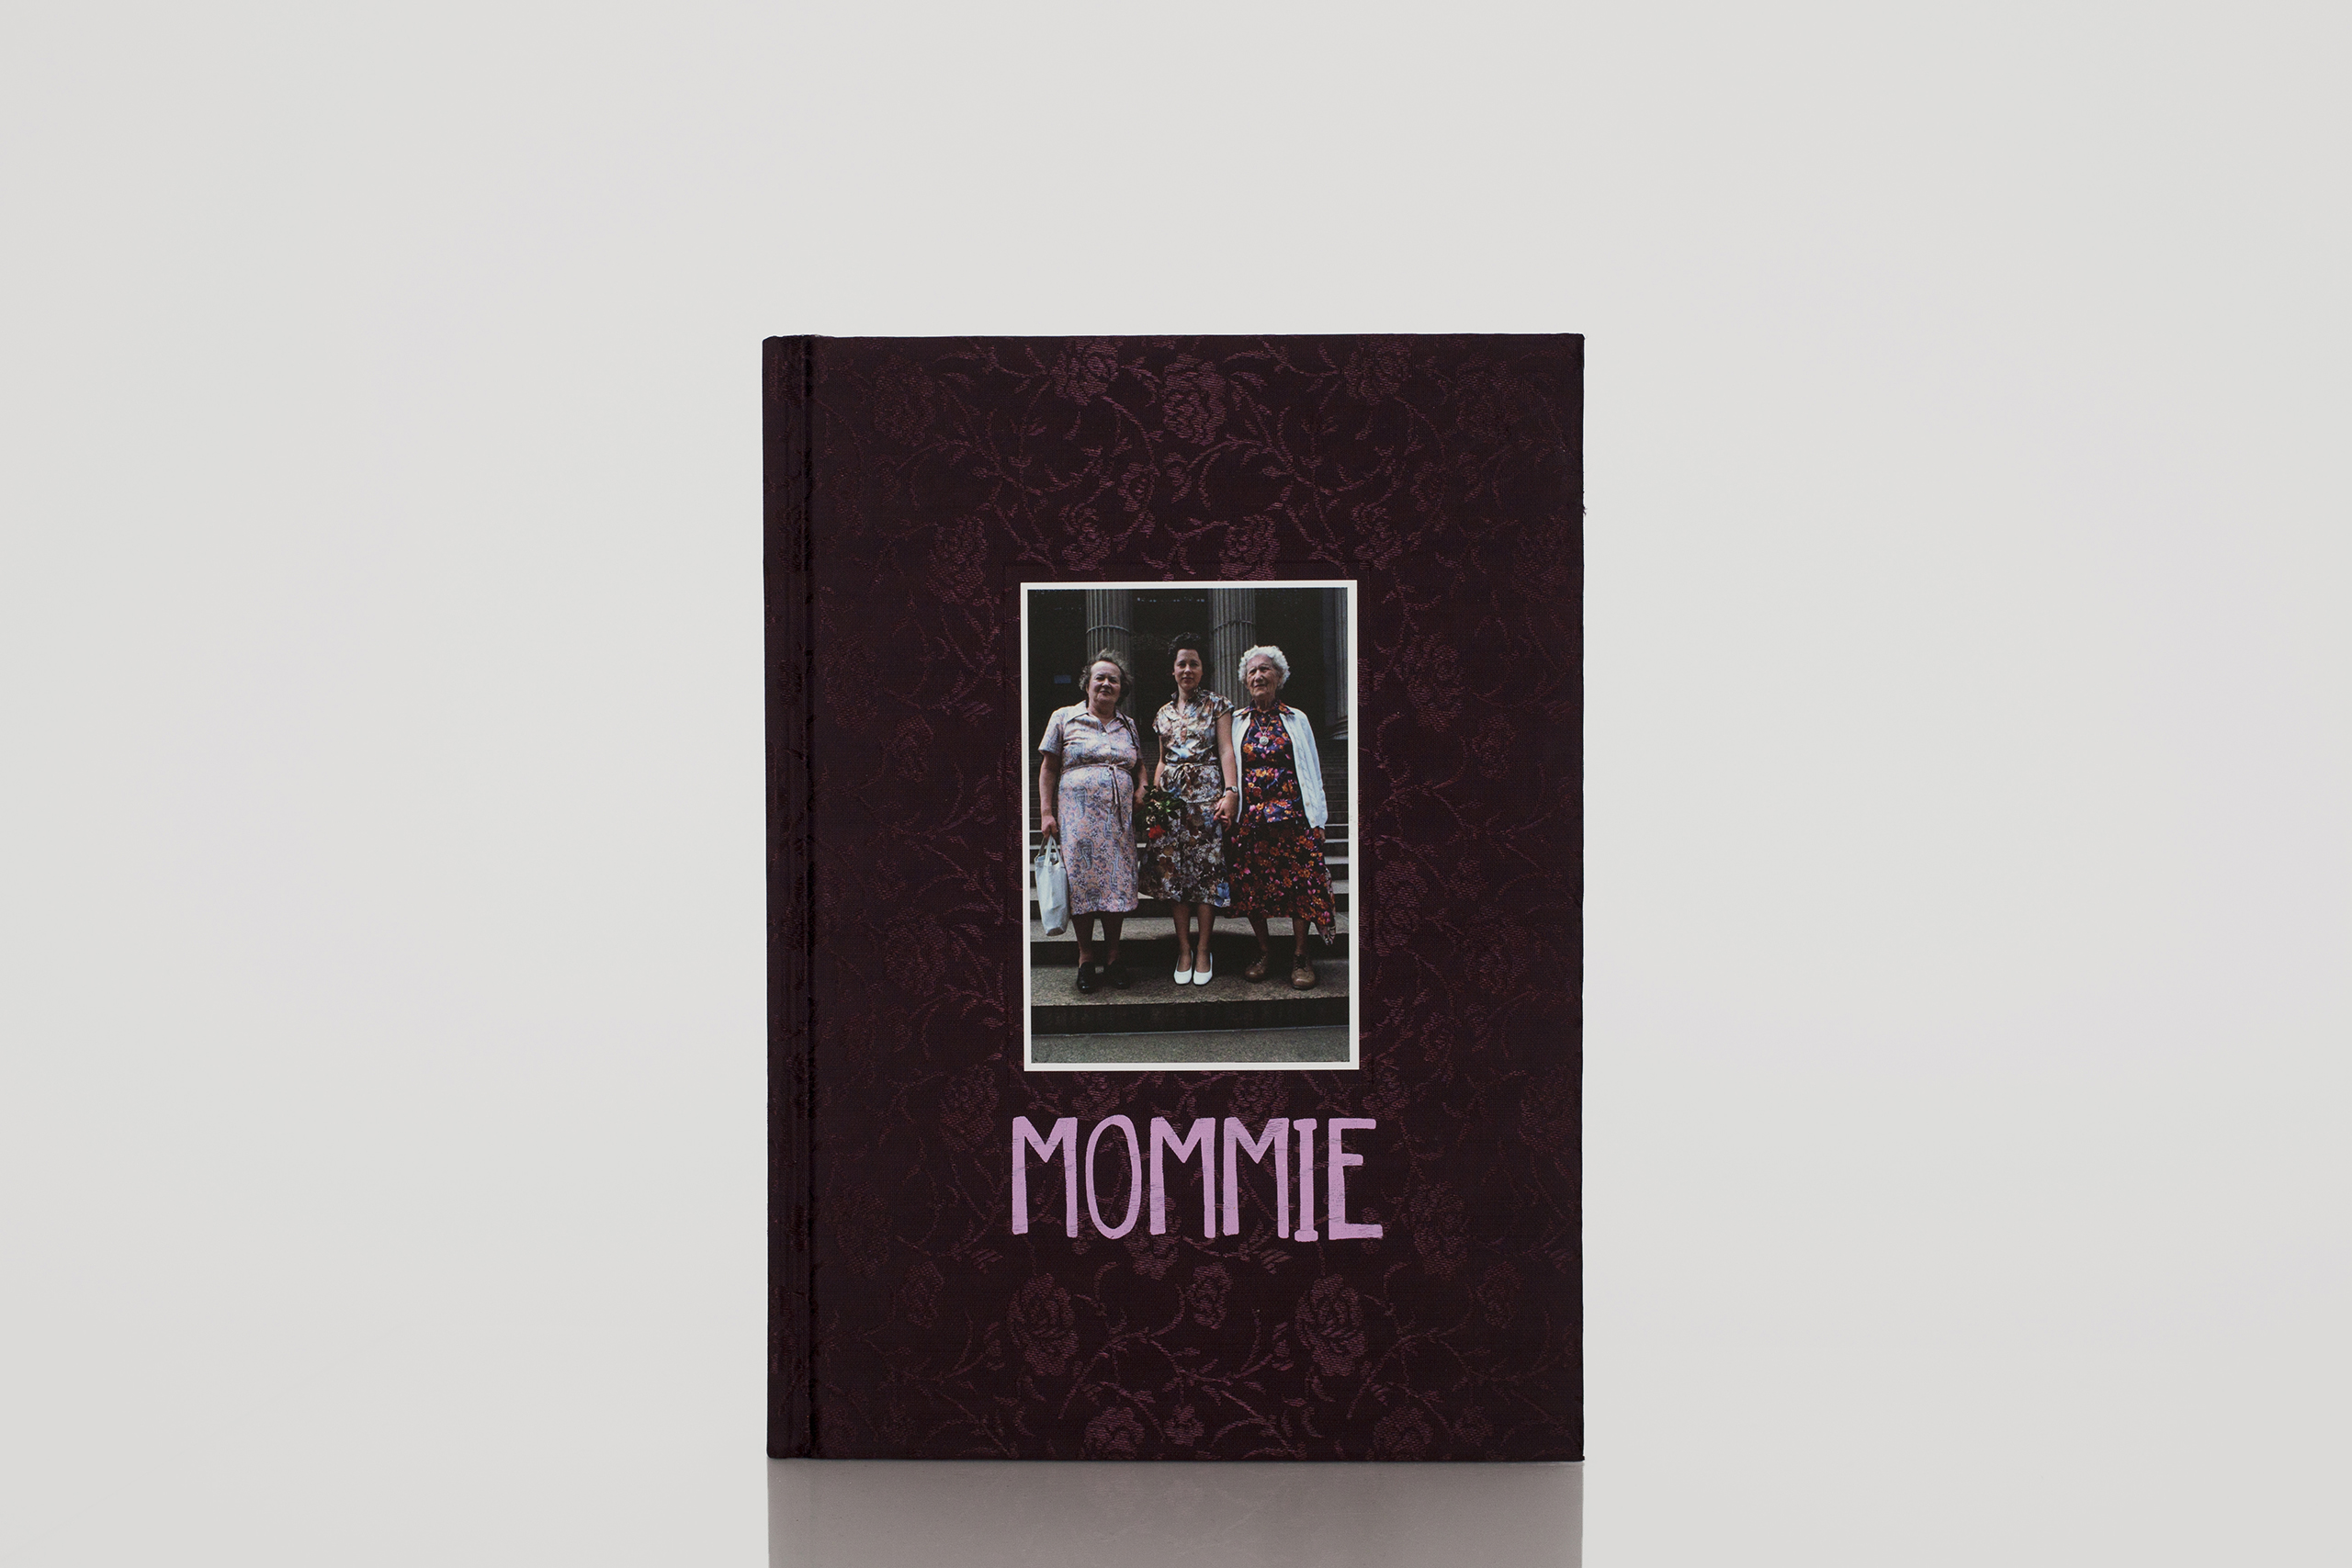 Mommie by Arlene GottfriedPublished by powerHouse